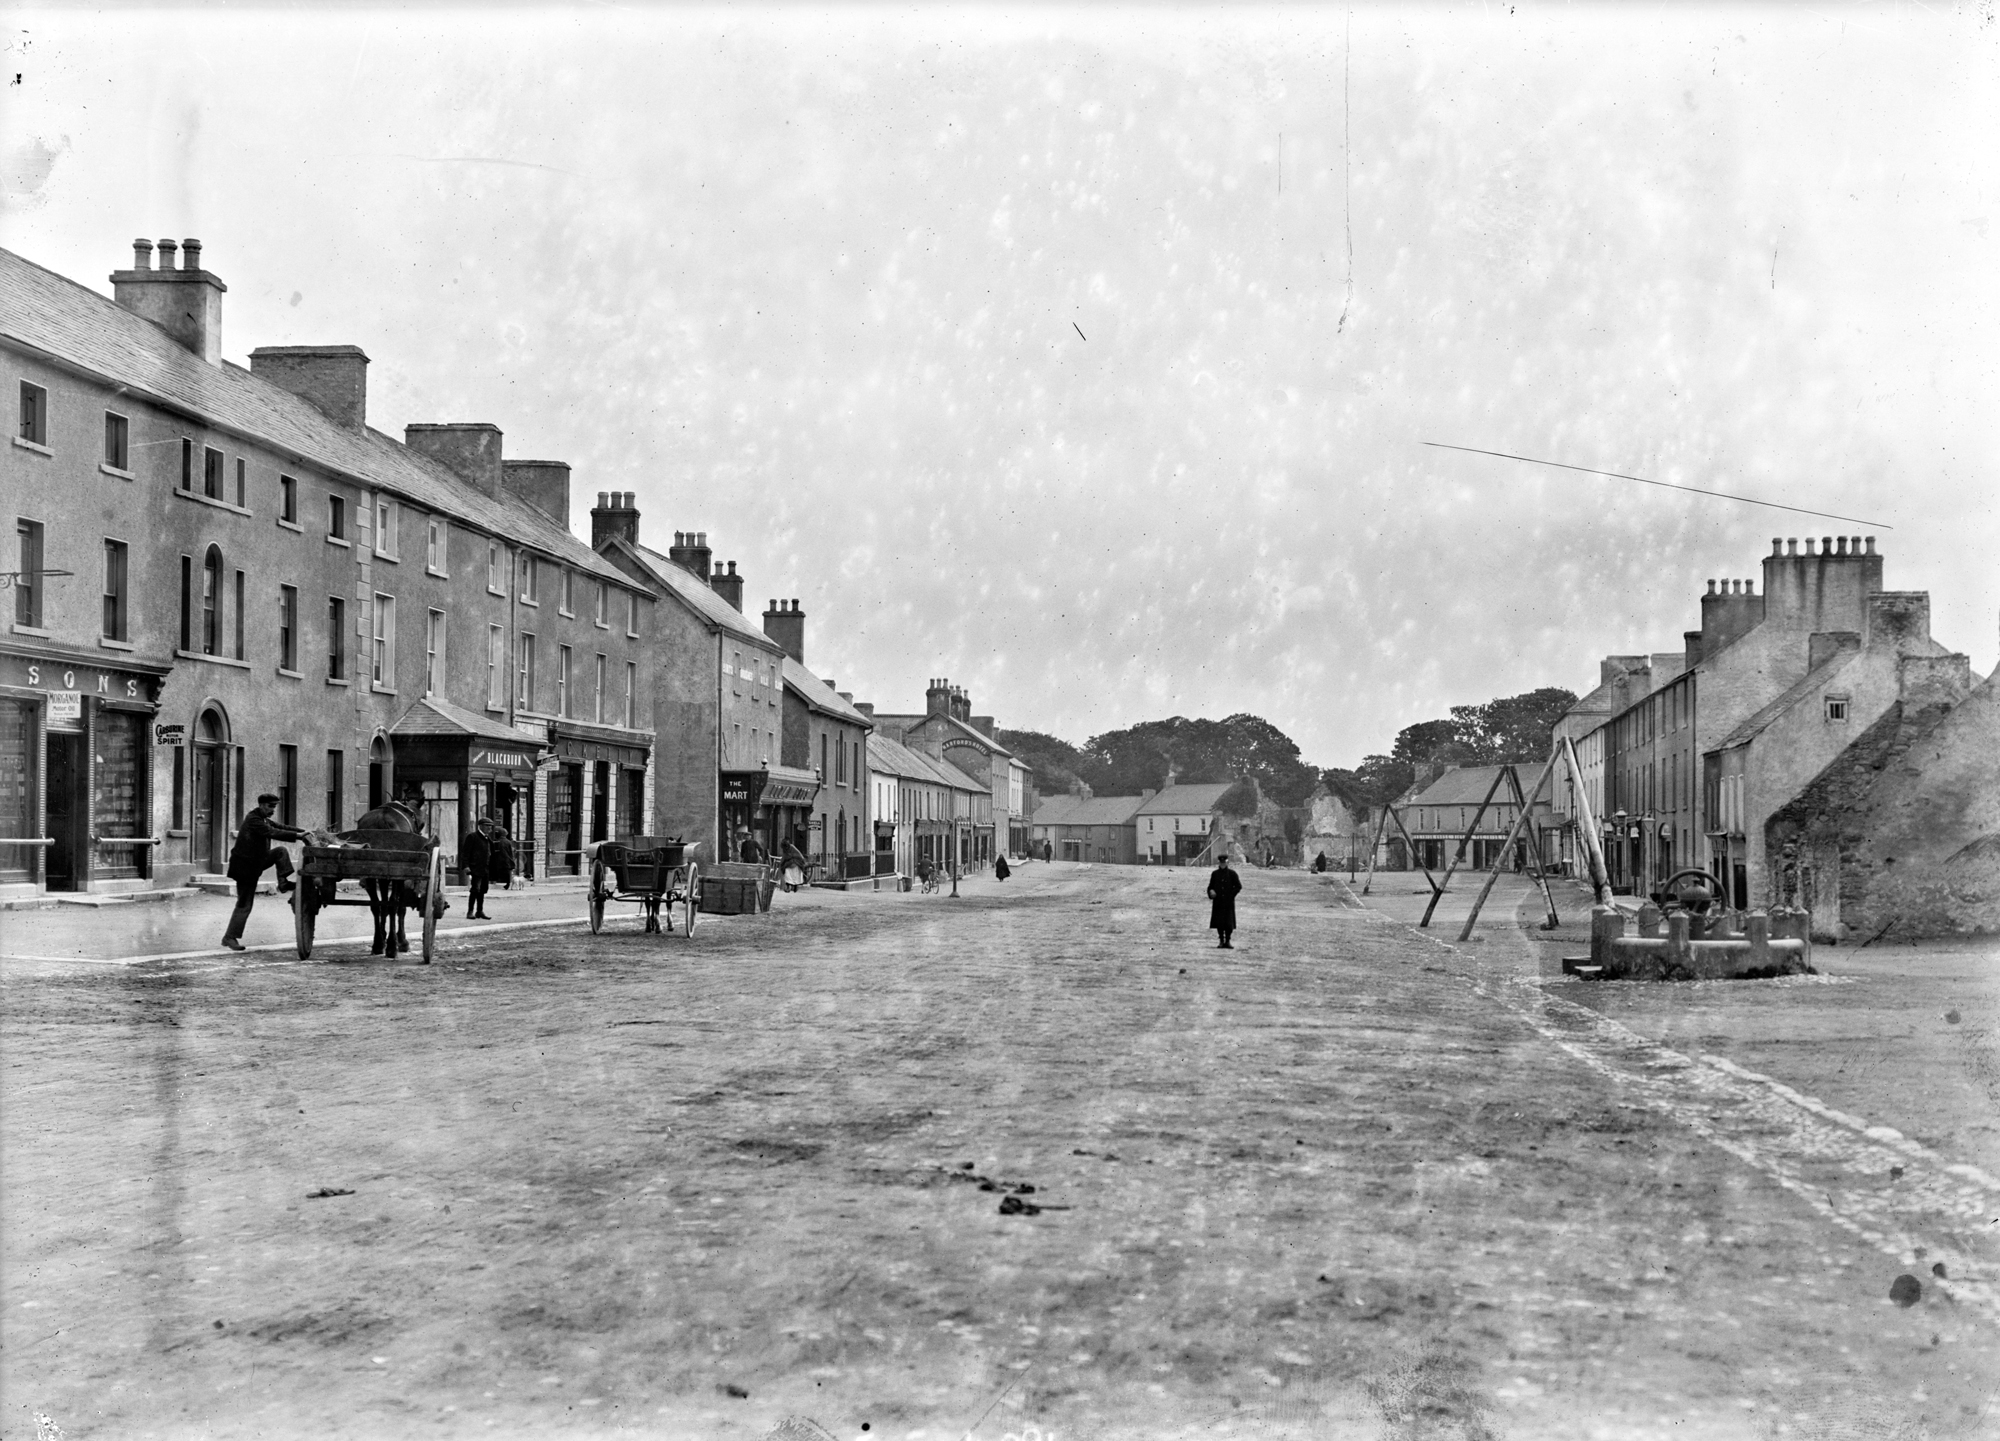 Meet Moate's Main Street - from the west!